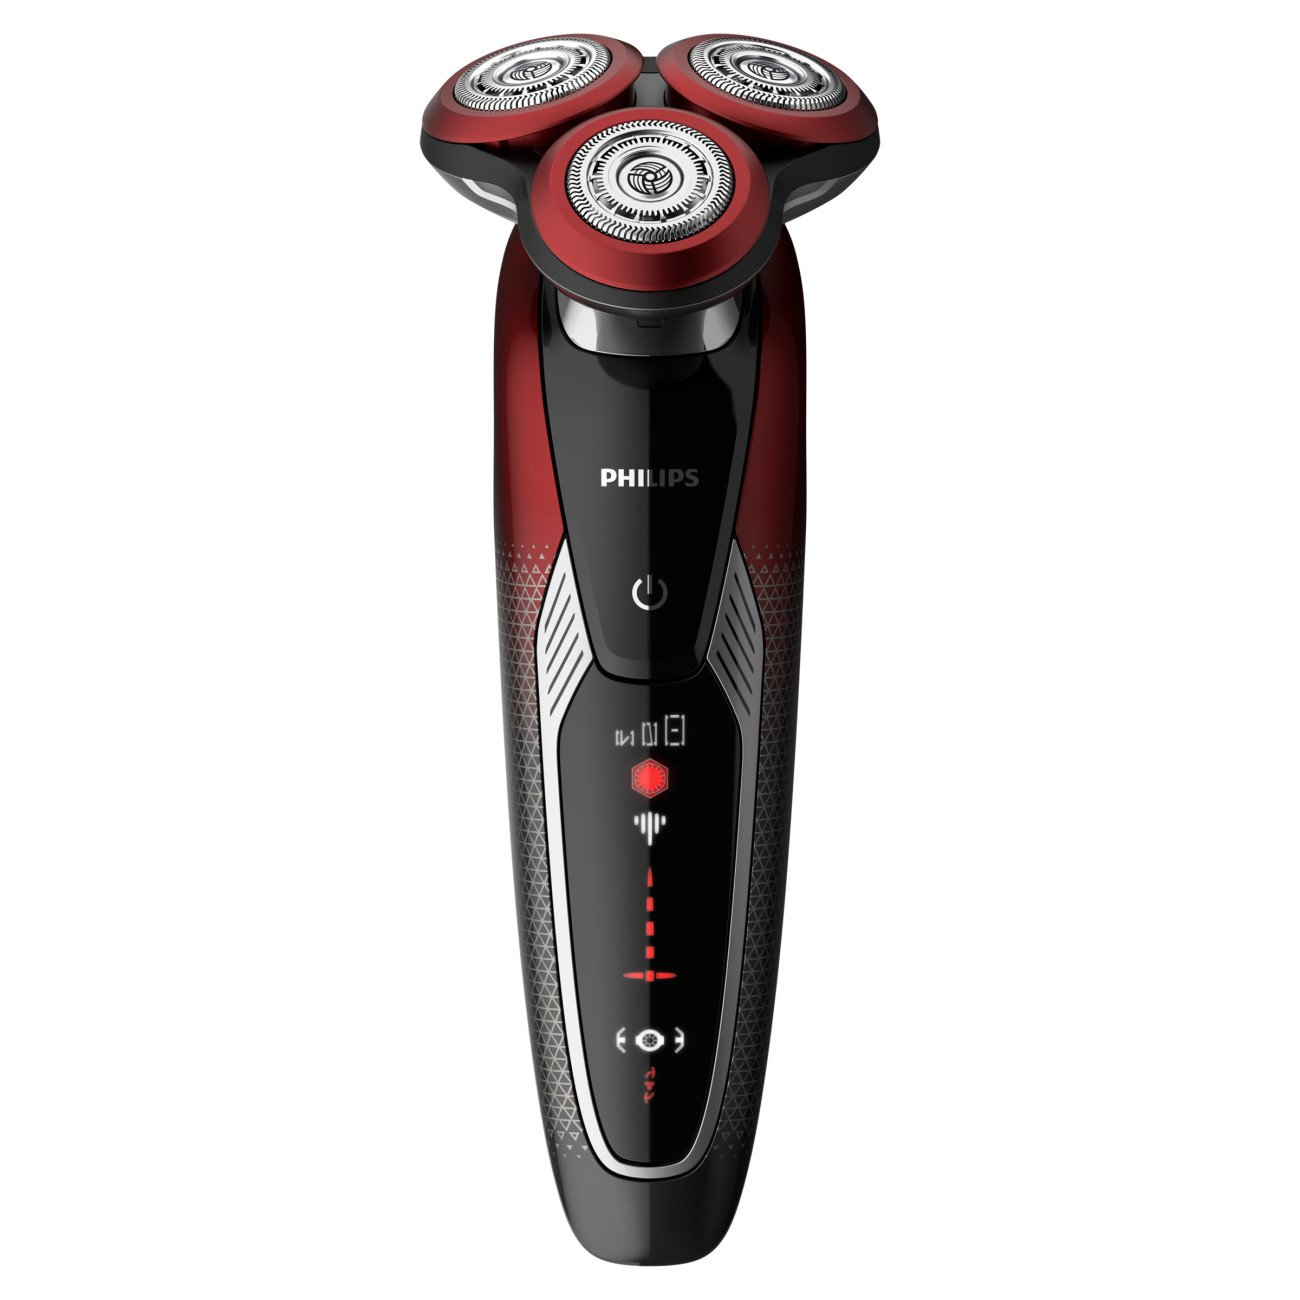 Philips Norelco Special Edition Star Wars Dark Side Wet & Dry Electric Shaver, SW9700/83, with Precision Trimmer by Philips Norelco (Image #9)